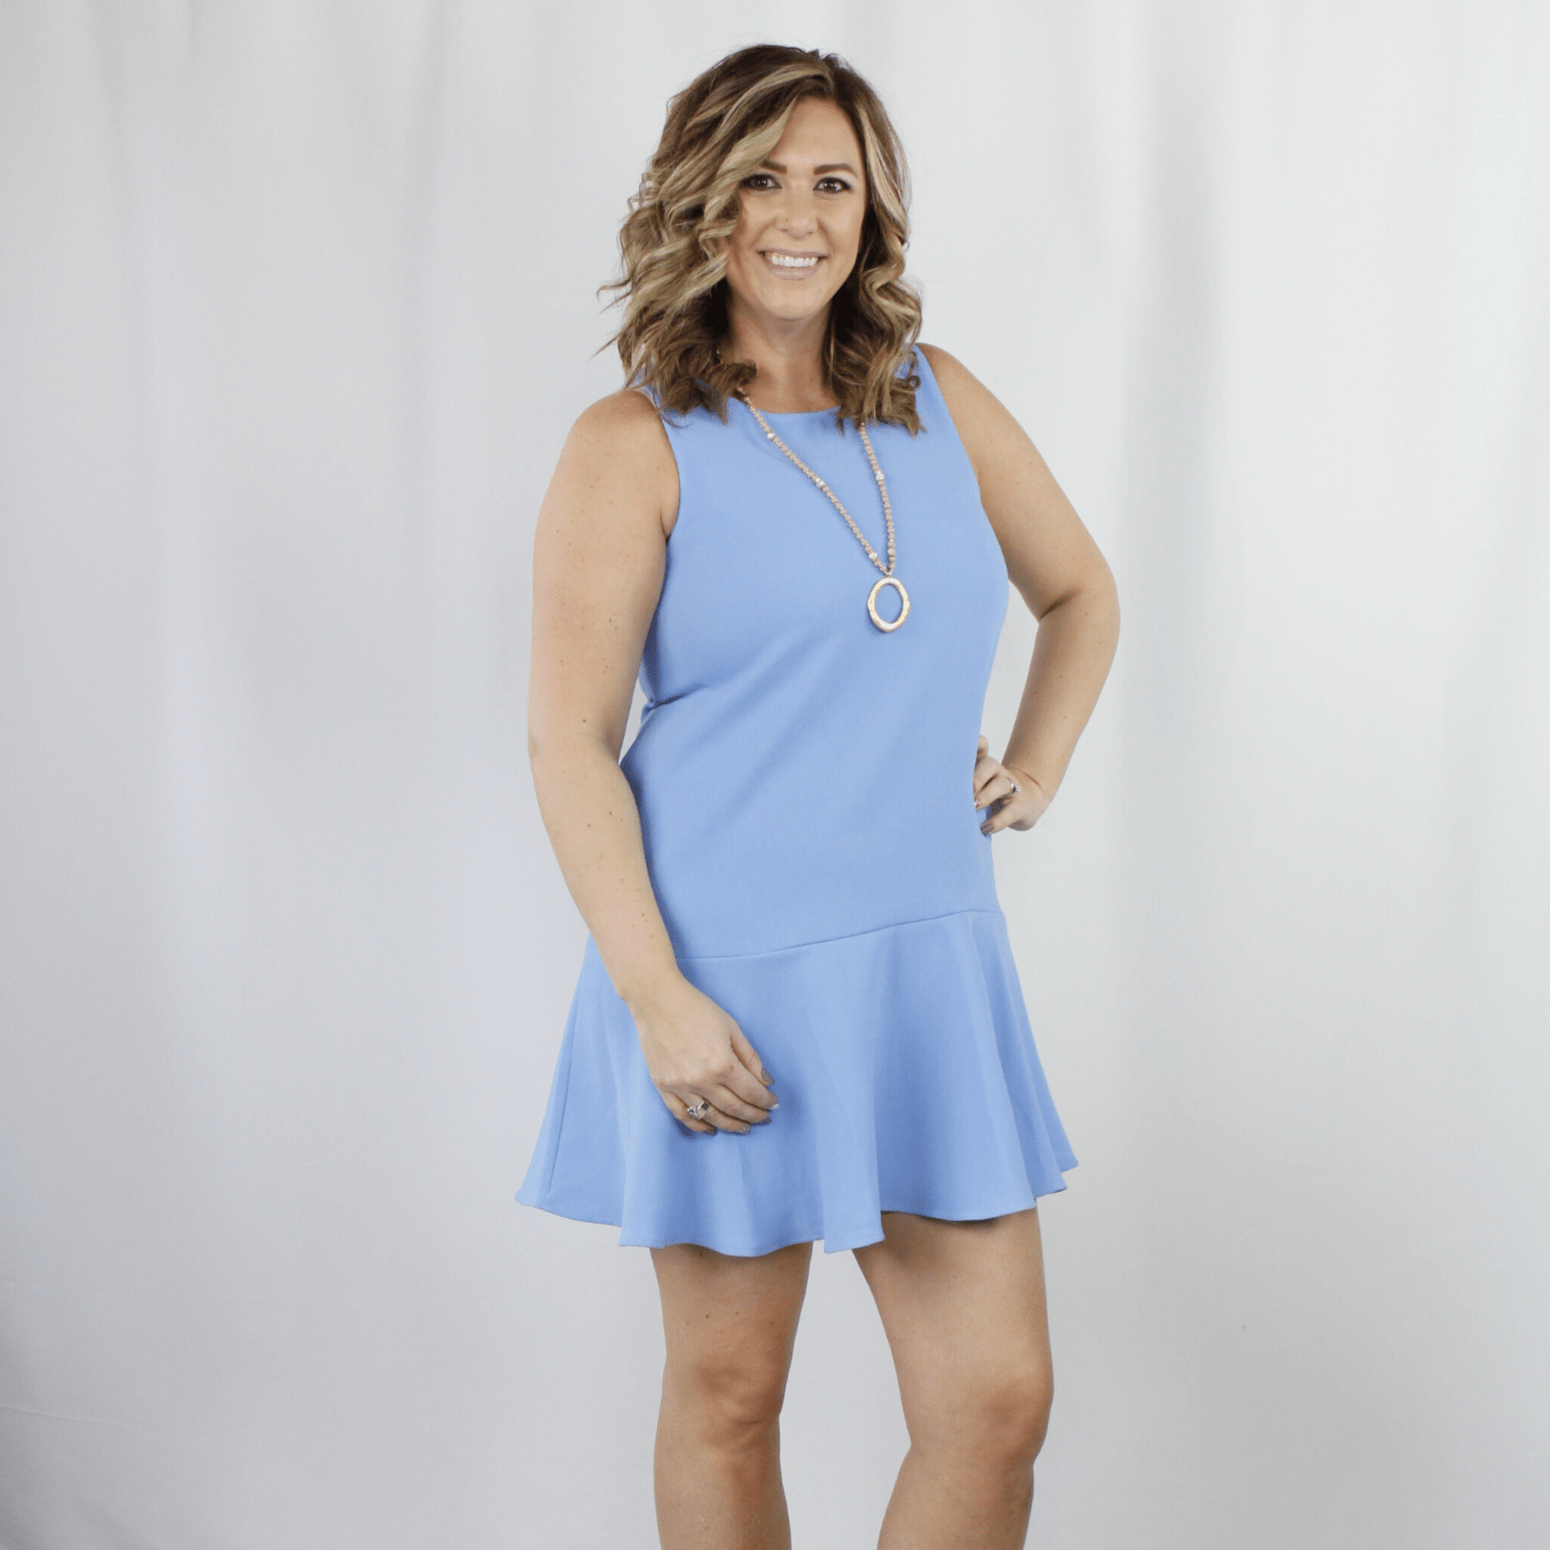 Periwinkle blue dress with ruffle bottom